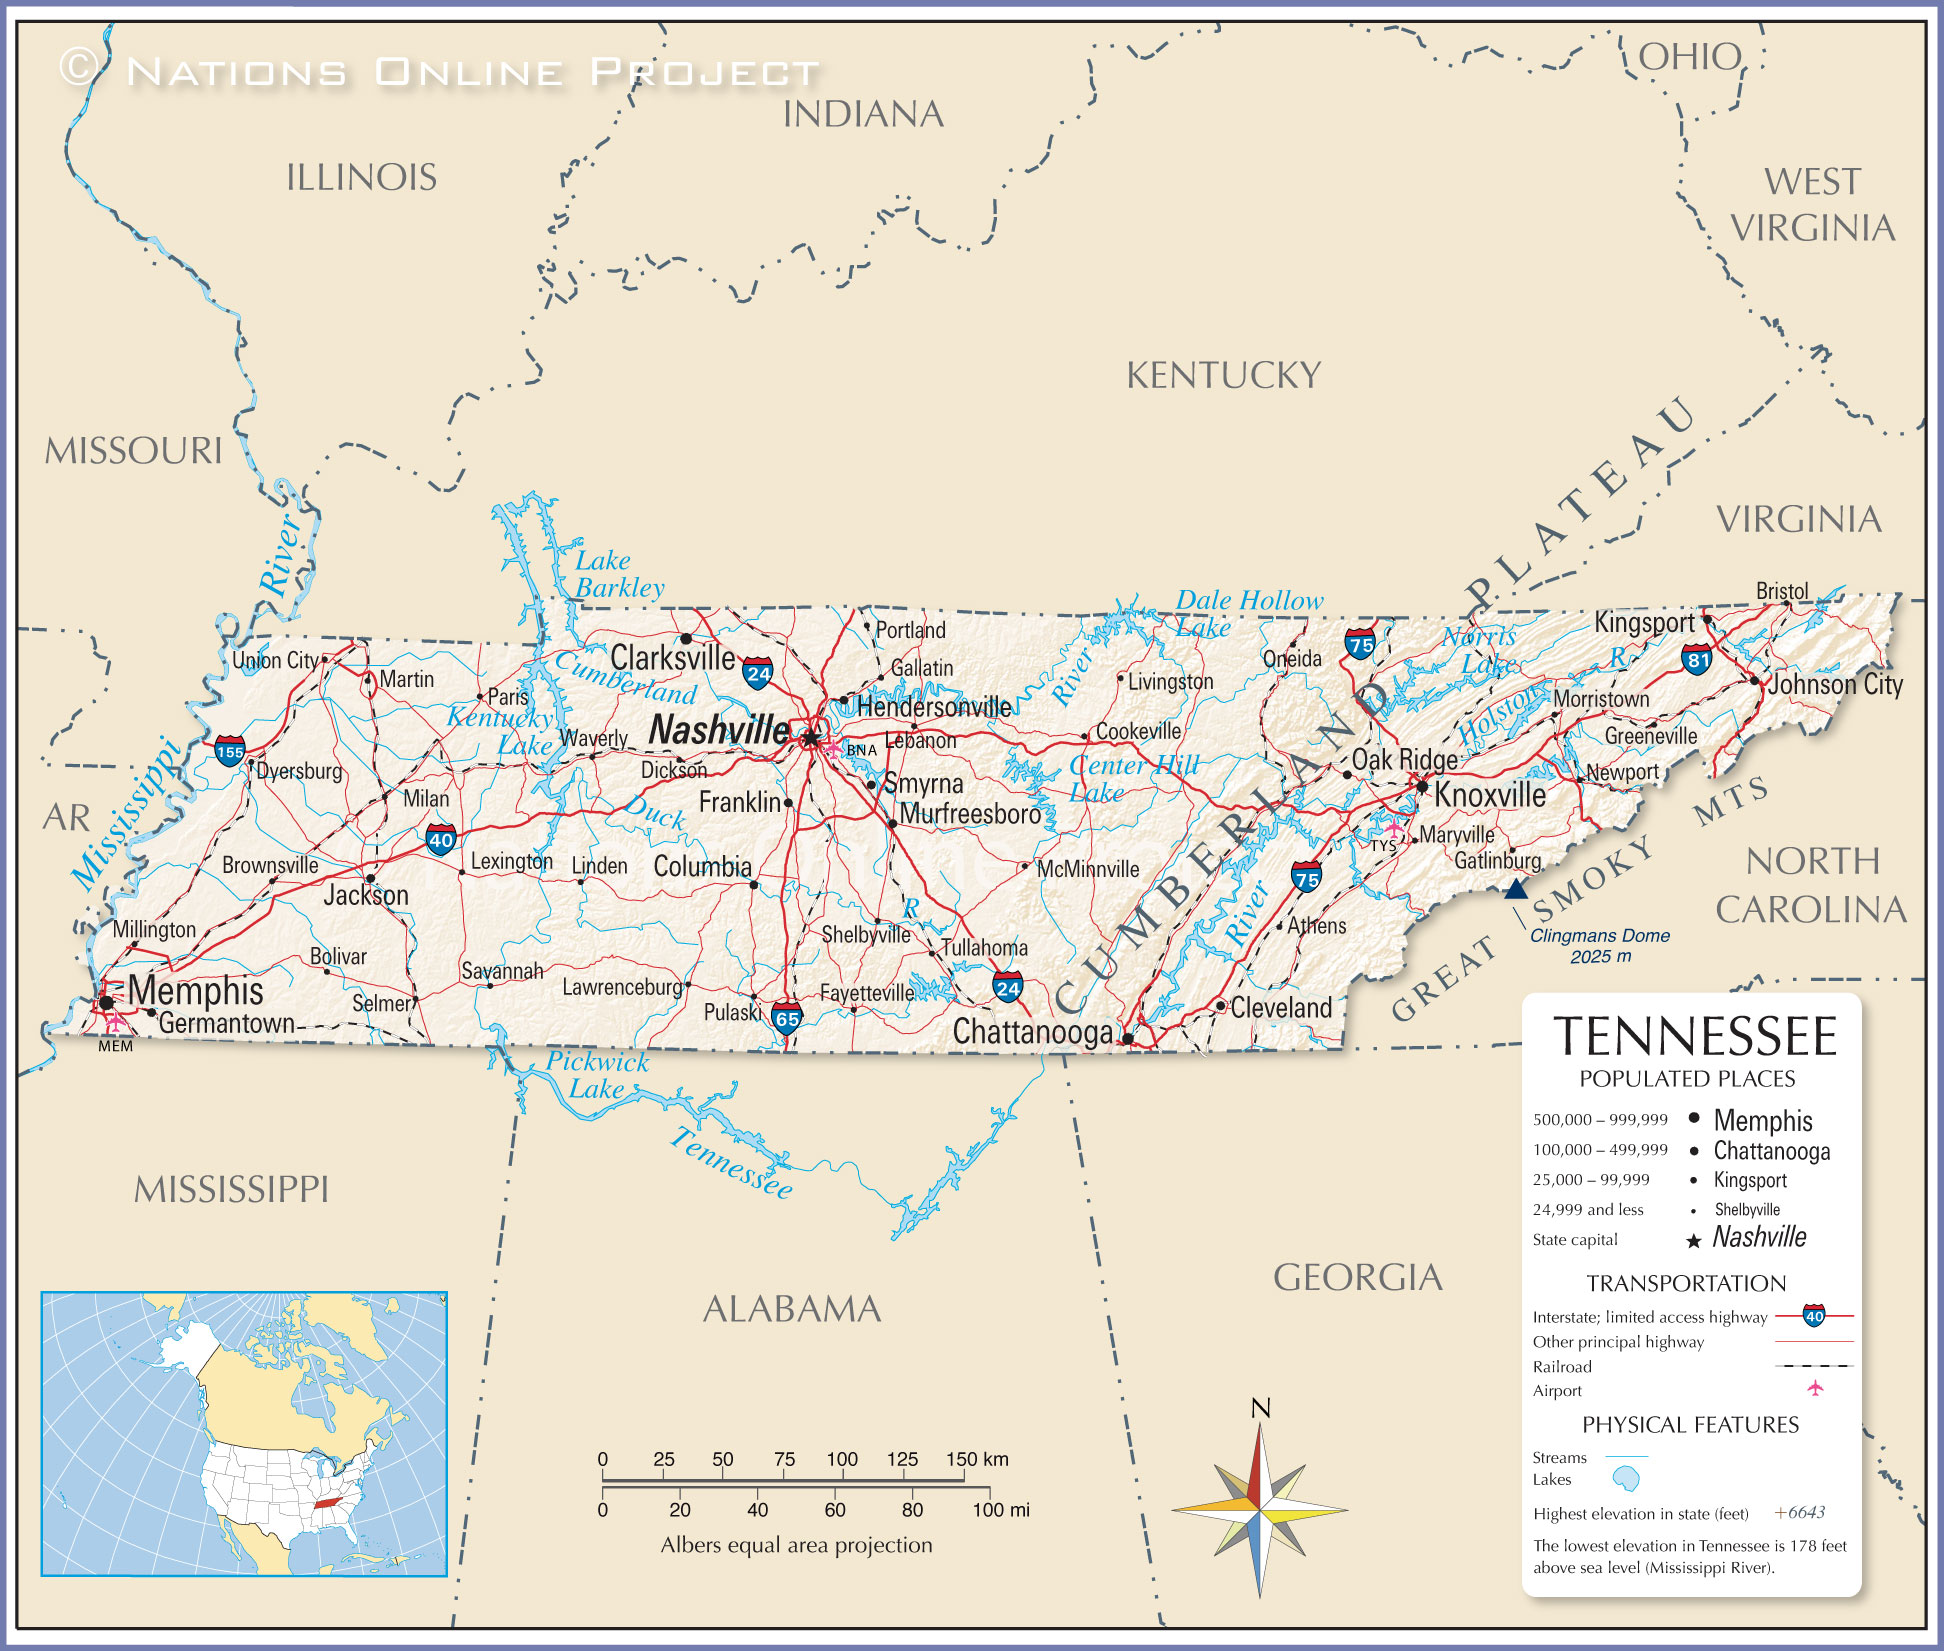 Reference Maps of Tennessee, USA - Nations Online Project on alabama tn map, bristol tn on map, aurora il on map, canton tn map, chattanooga pollution, chattanooga tennessee, west point tn map, atlanta ga map, hamilton county tn map, davidson county tn map, memphis tn map, gainesville tn map, salem tn map, gary tn map, fletcher tn map, martin tn map, ringgold tn map, clarksville tn map, ann arbor mi map, hixson tn 37343 map,